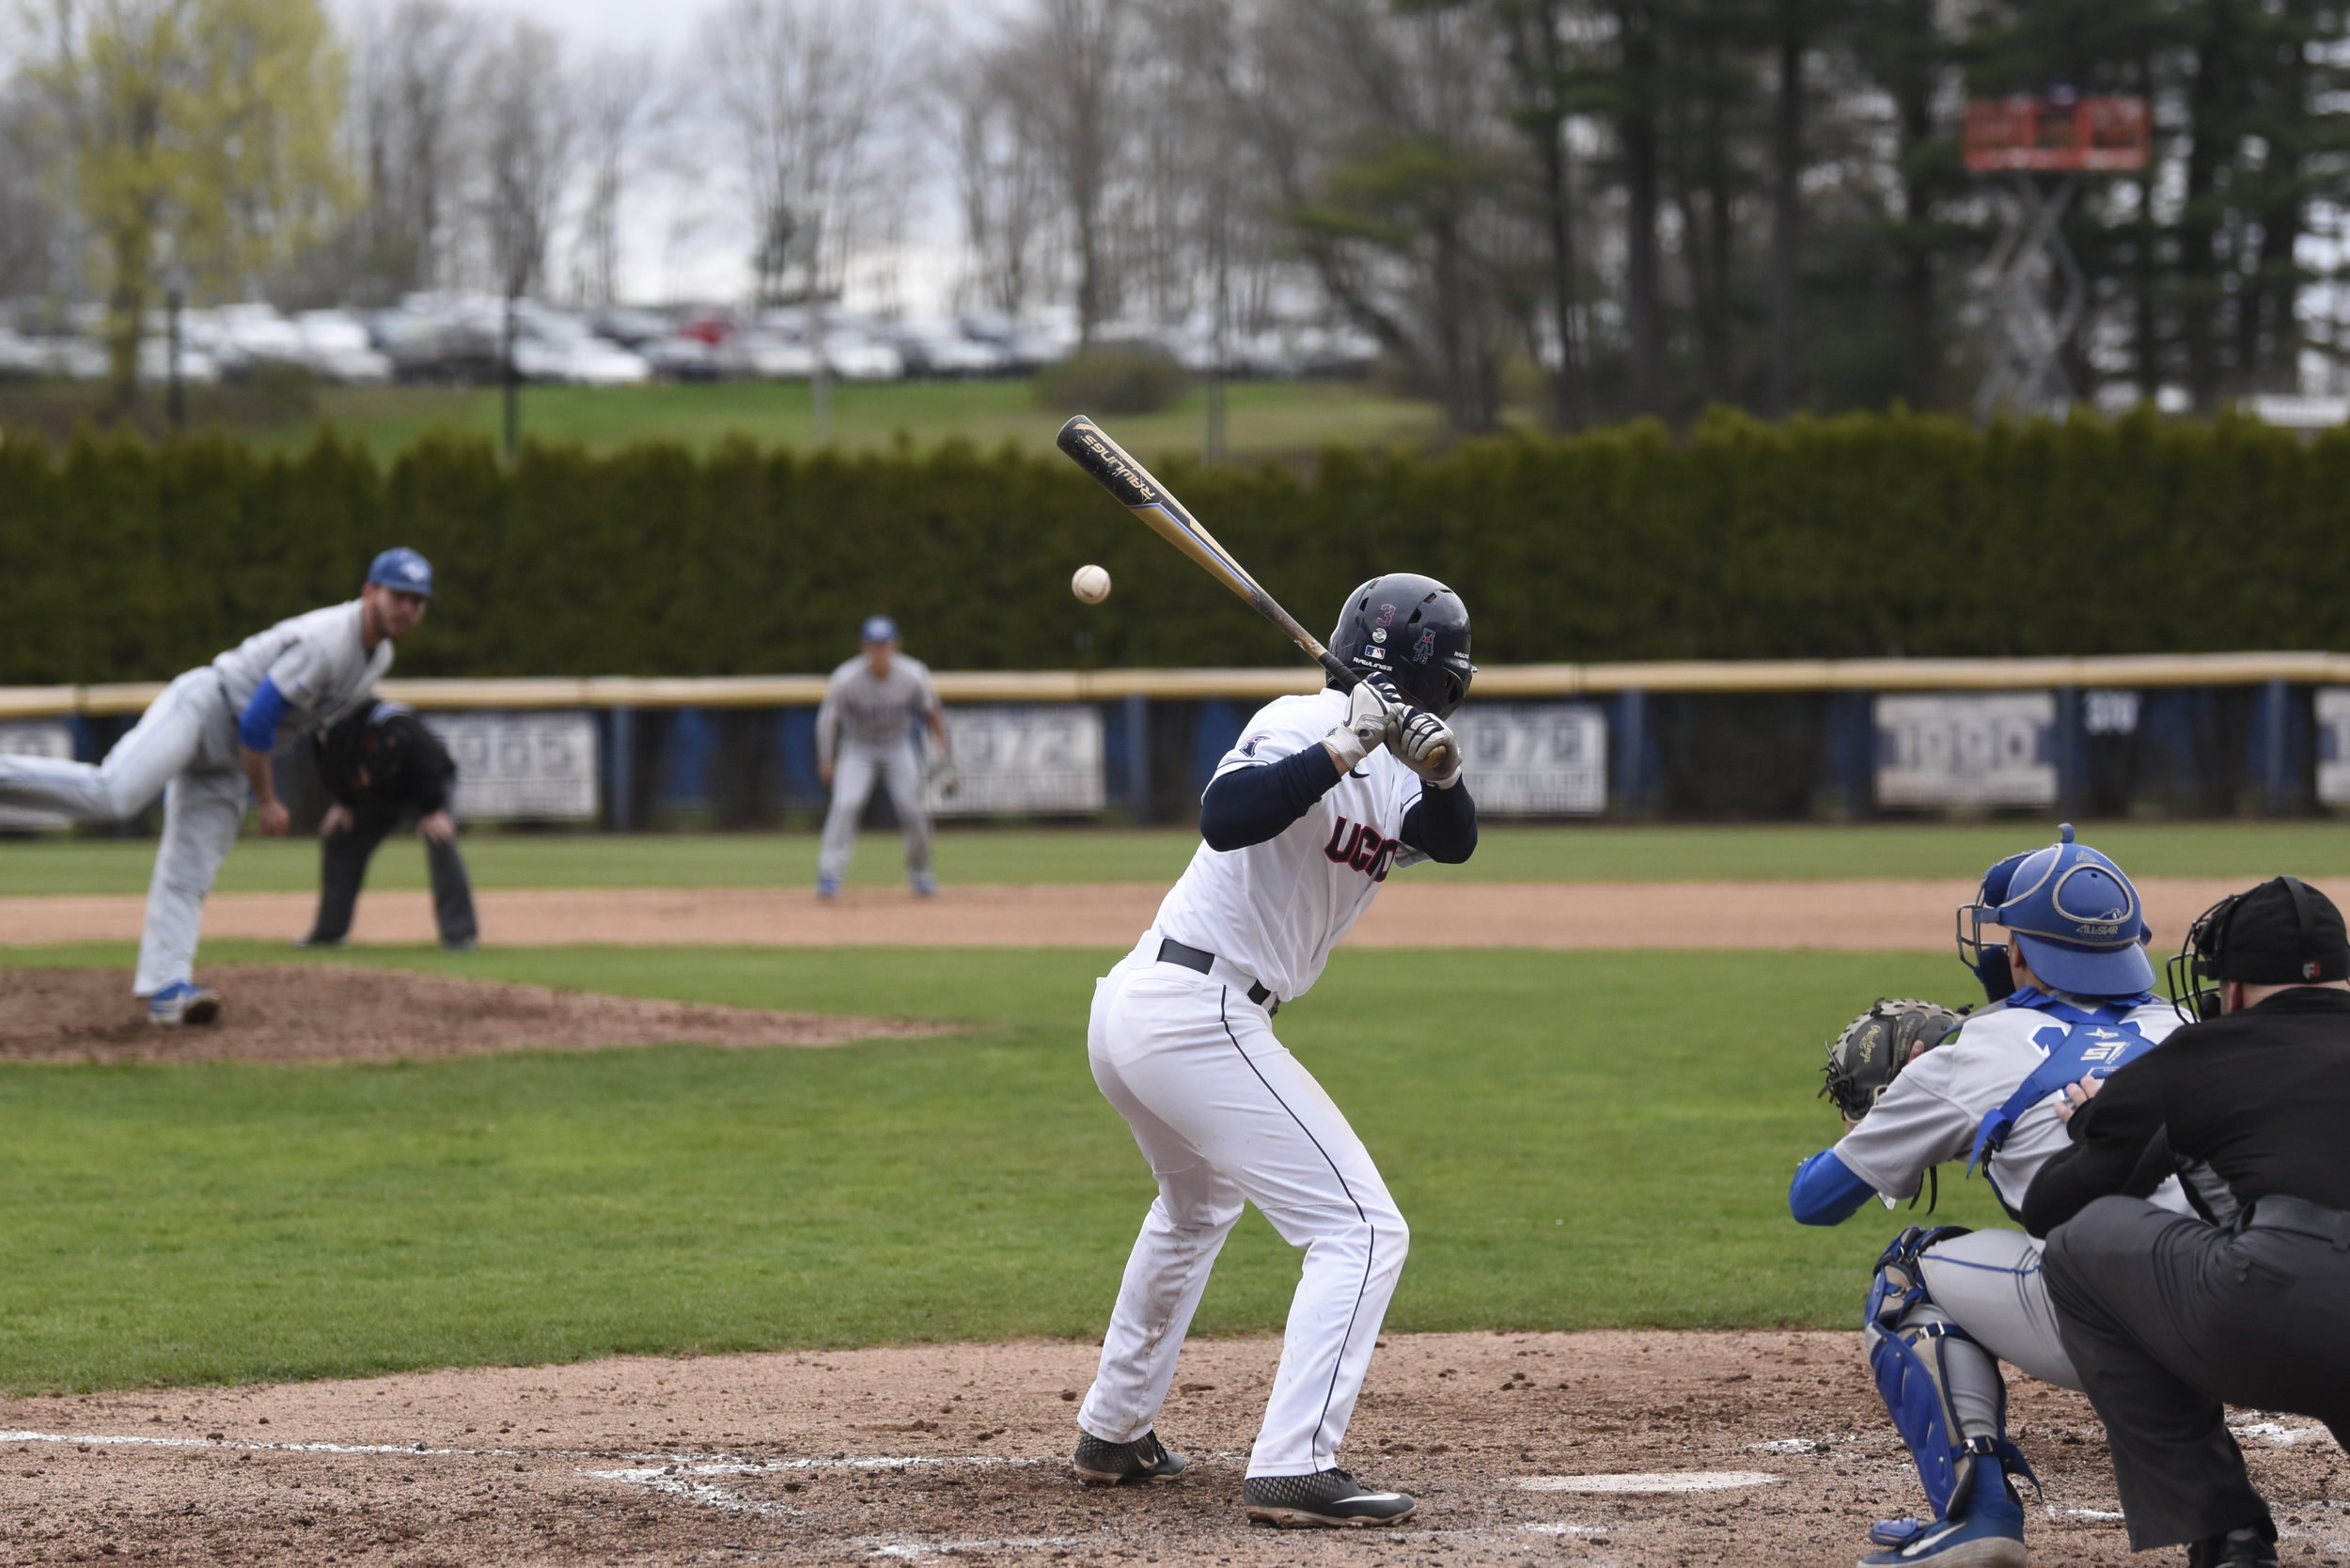 UConn Baseball takes home a 9-1 win against Central Connecticut State University. This leaves them at 27-18 for the season. (Photo by Brandon Barzola/The Daily Campus)